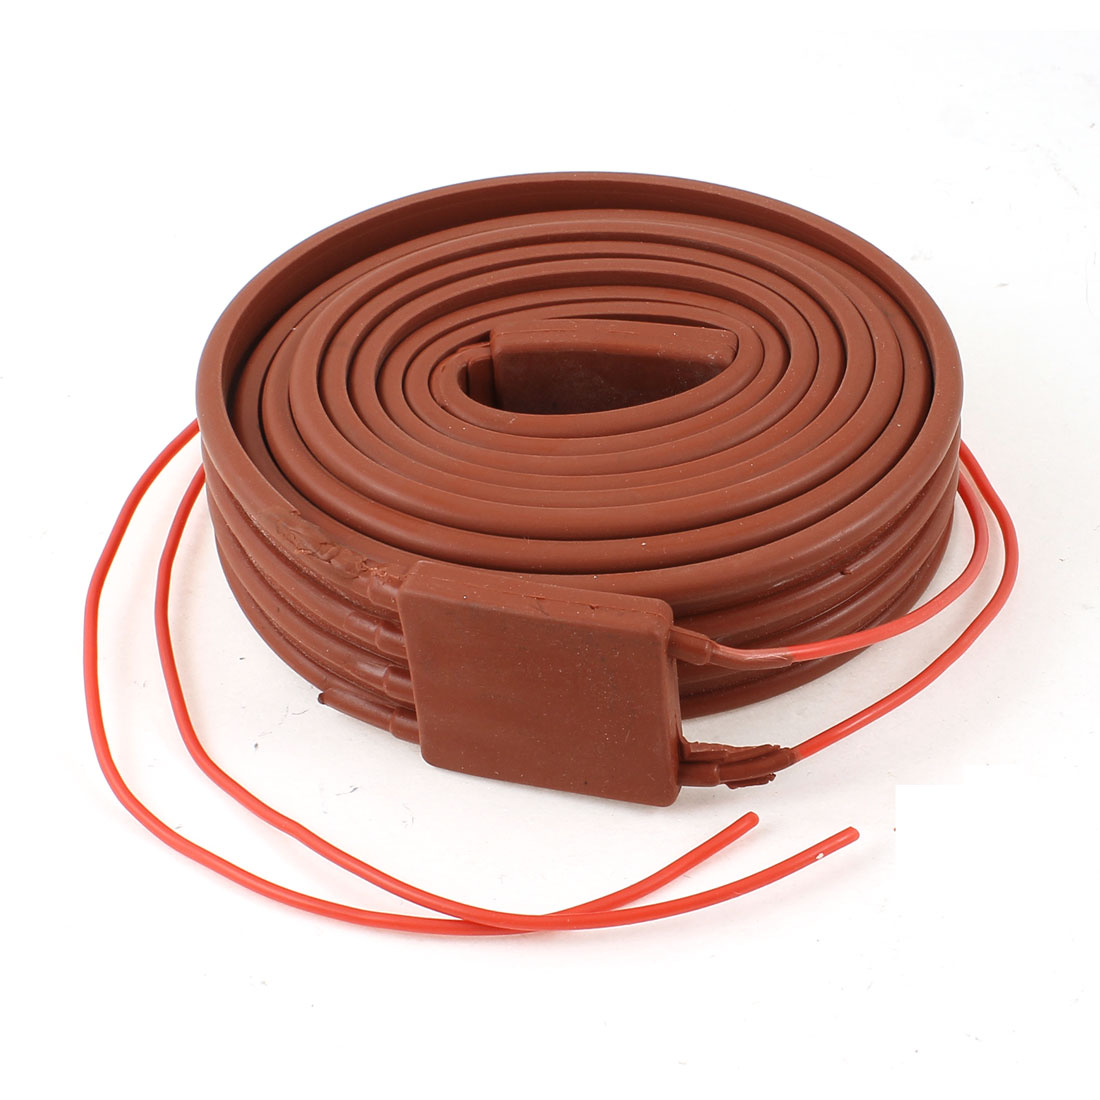 24V Freezing Protection Silicone Band Waterproof Heater Strip 2M x 30mm